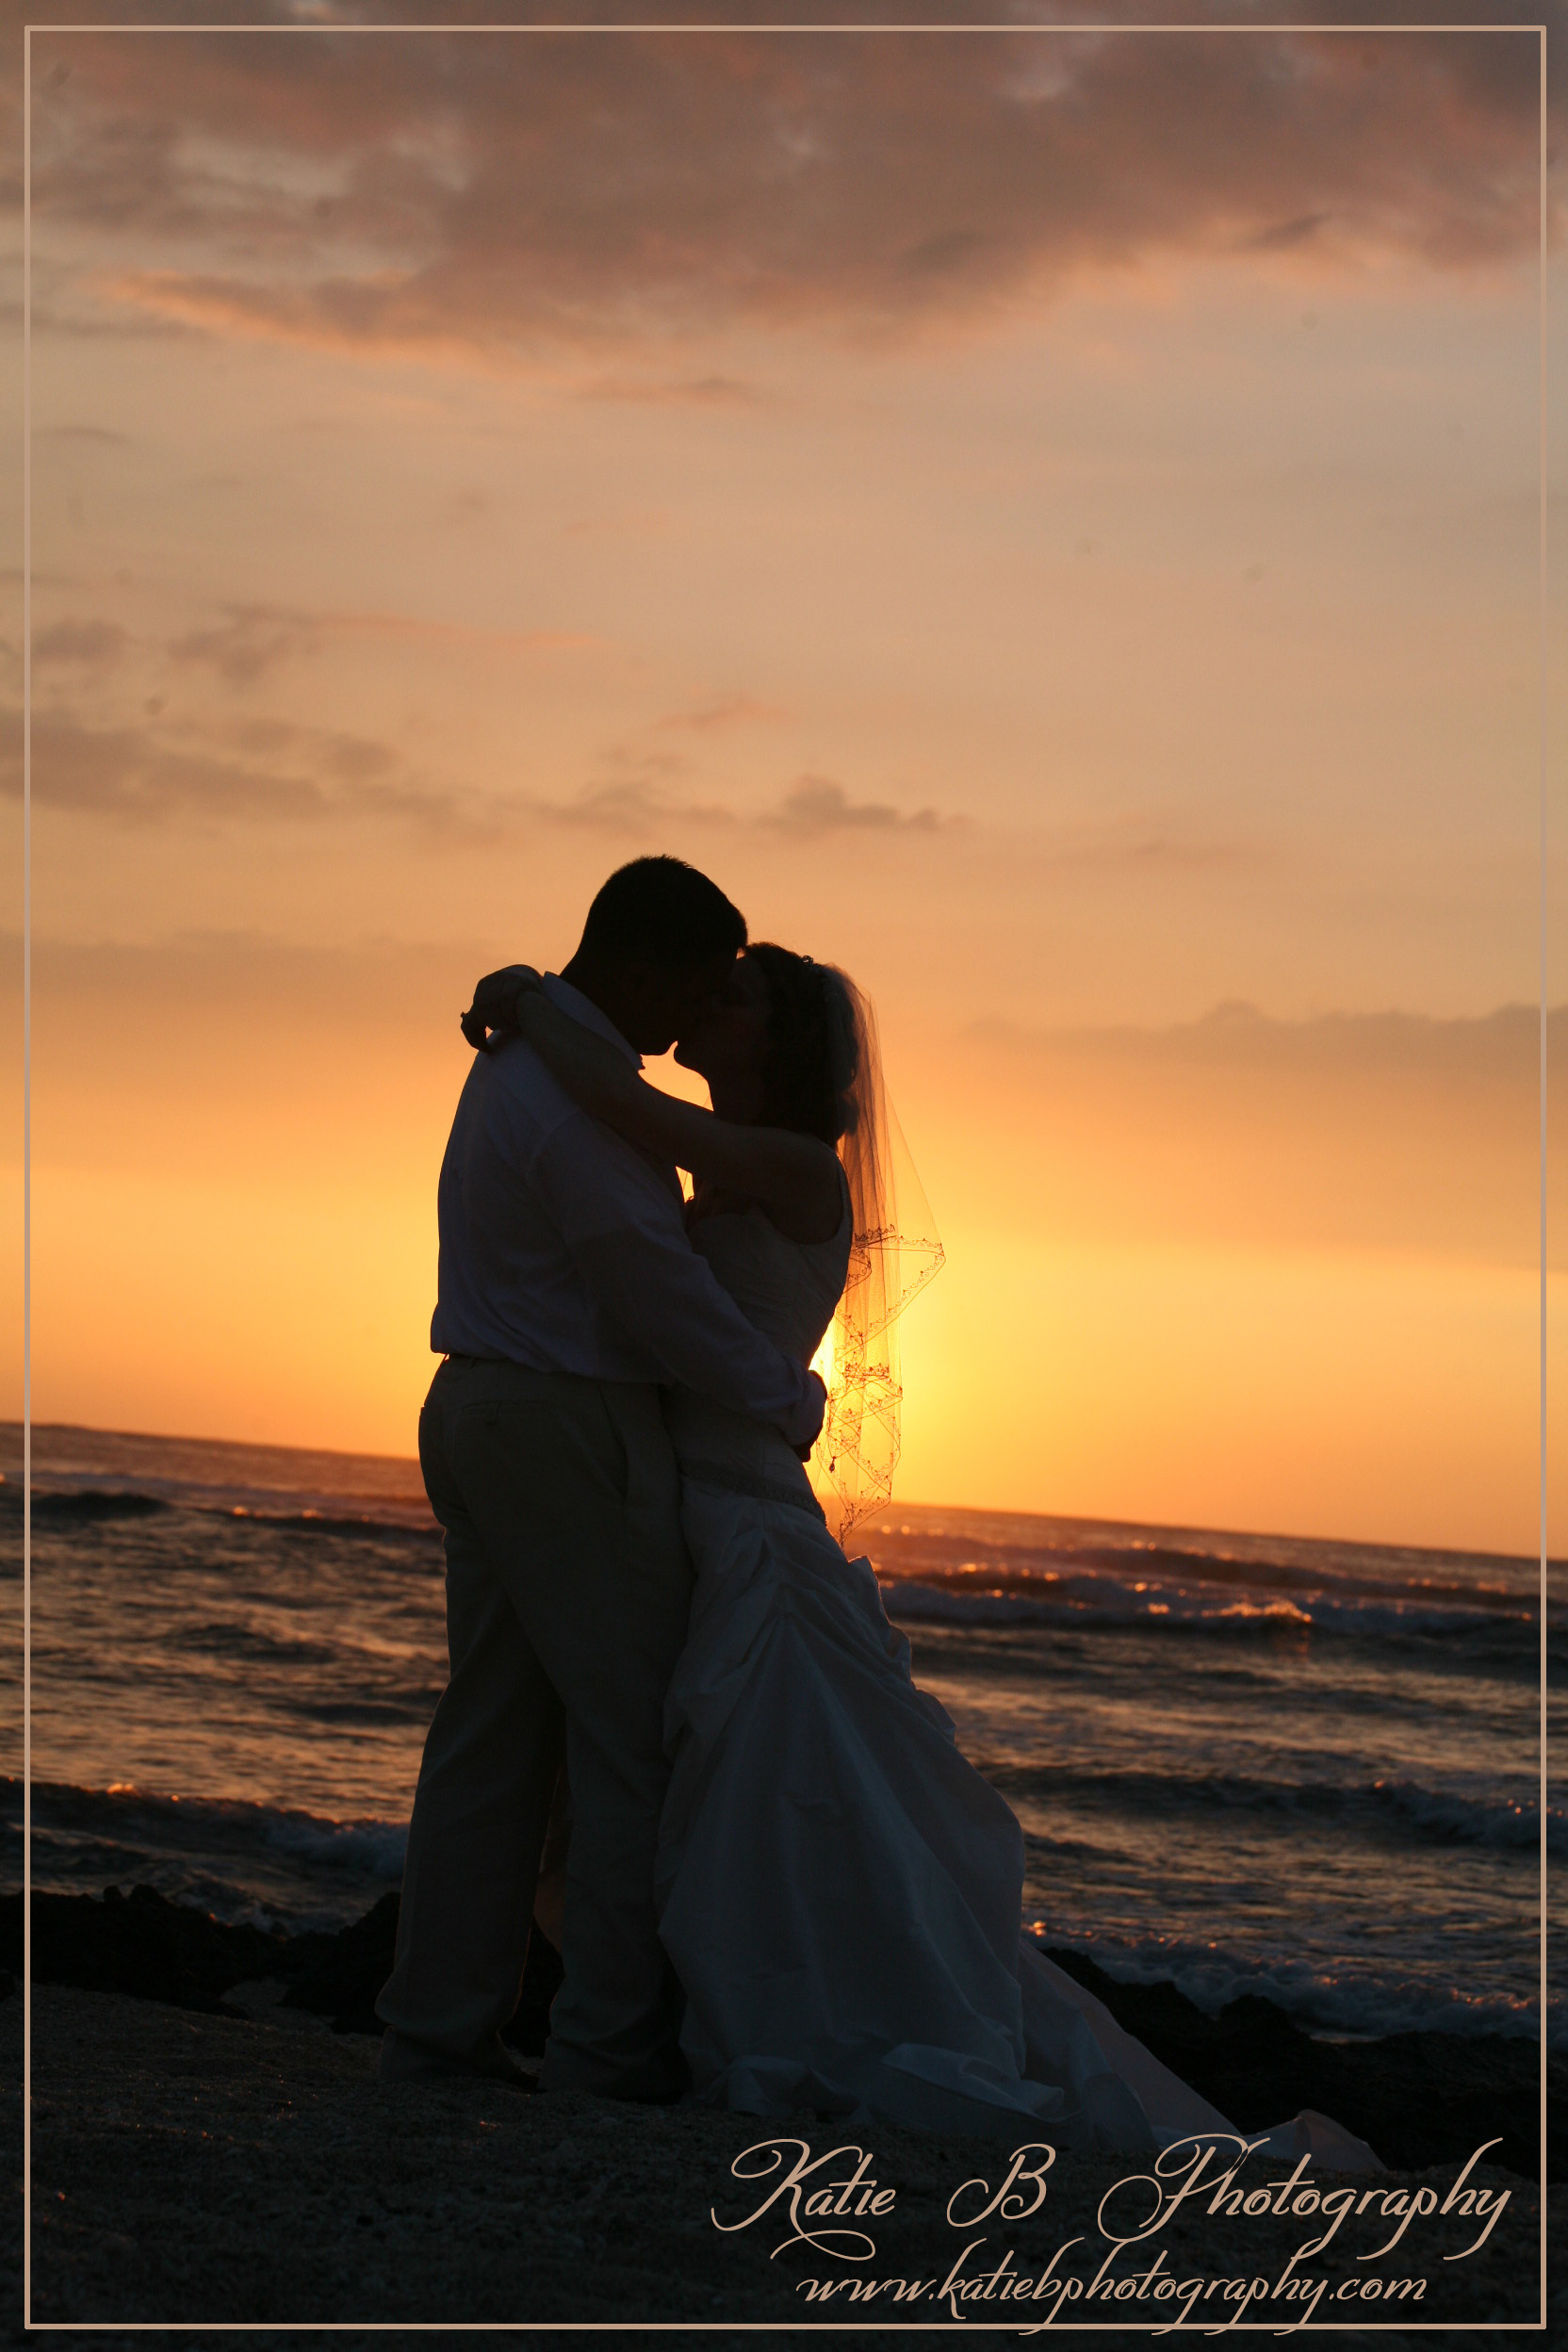 Inspiration, orange, Bride, Groom, Wedding, Kiss, Ocean, Board, Sunset, Katie b photography